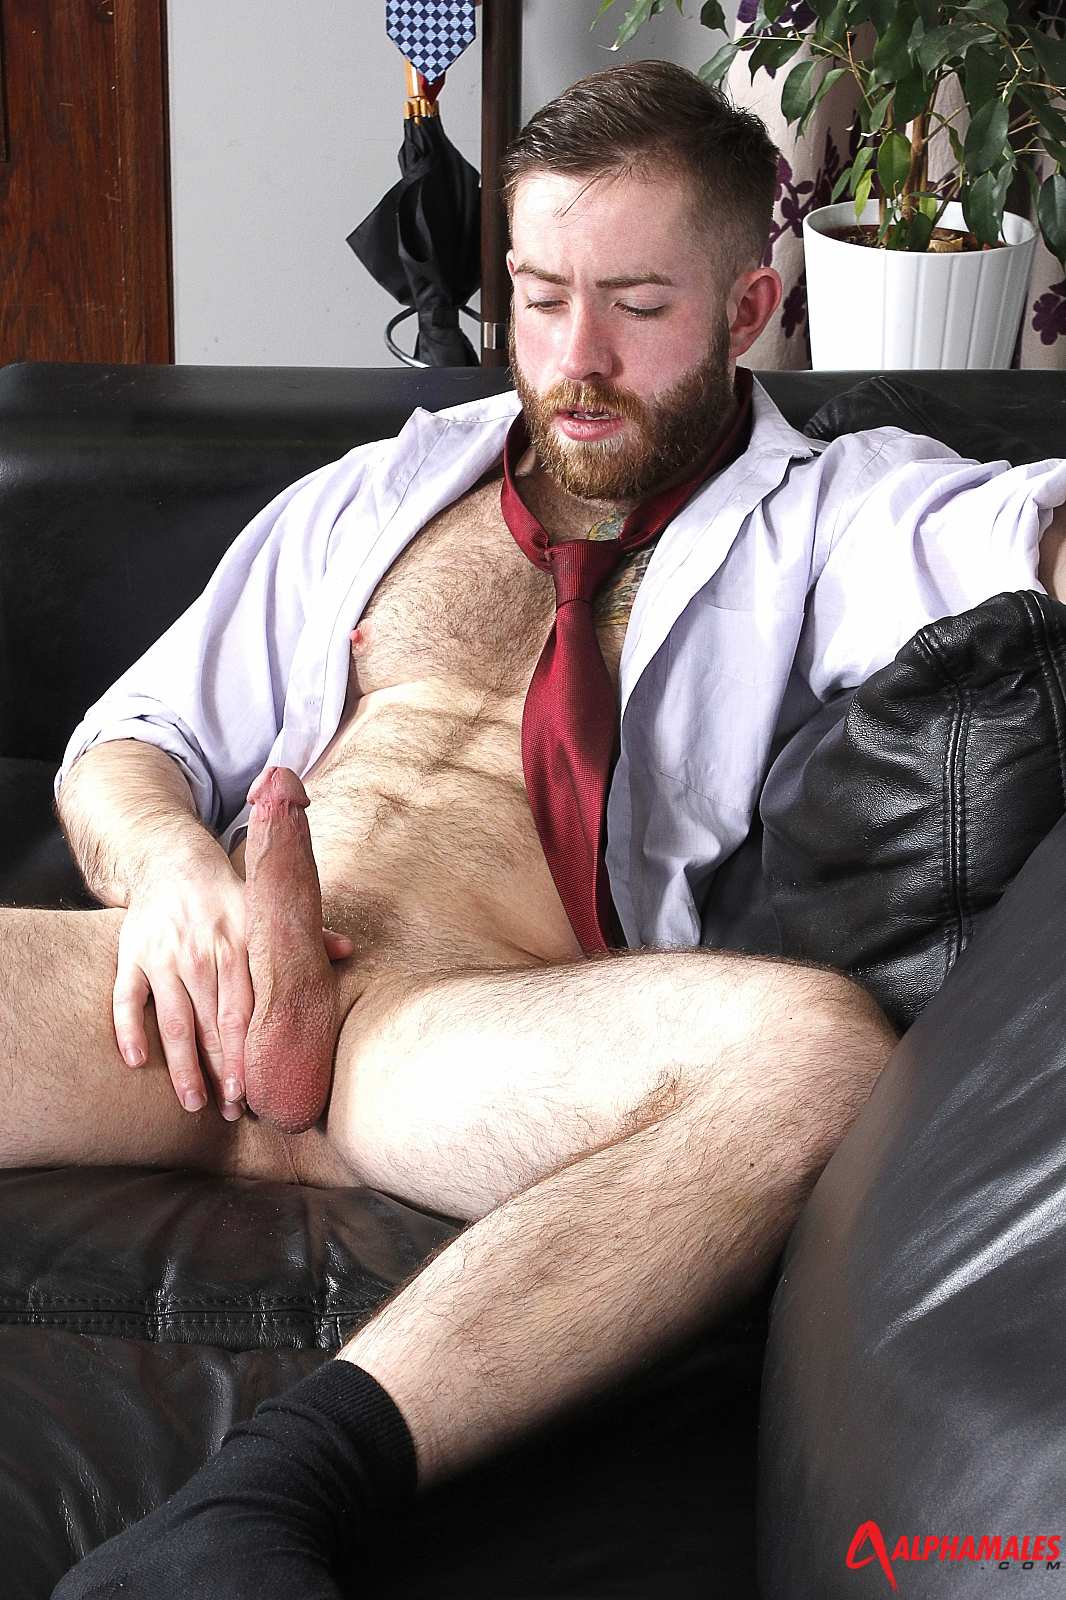 hairy Naked balls with men